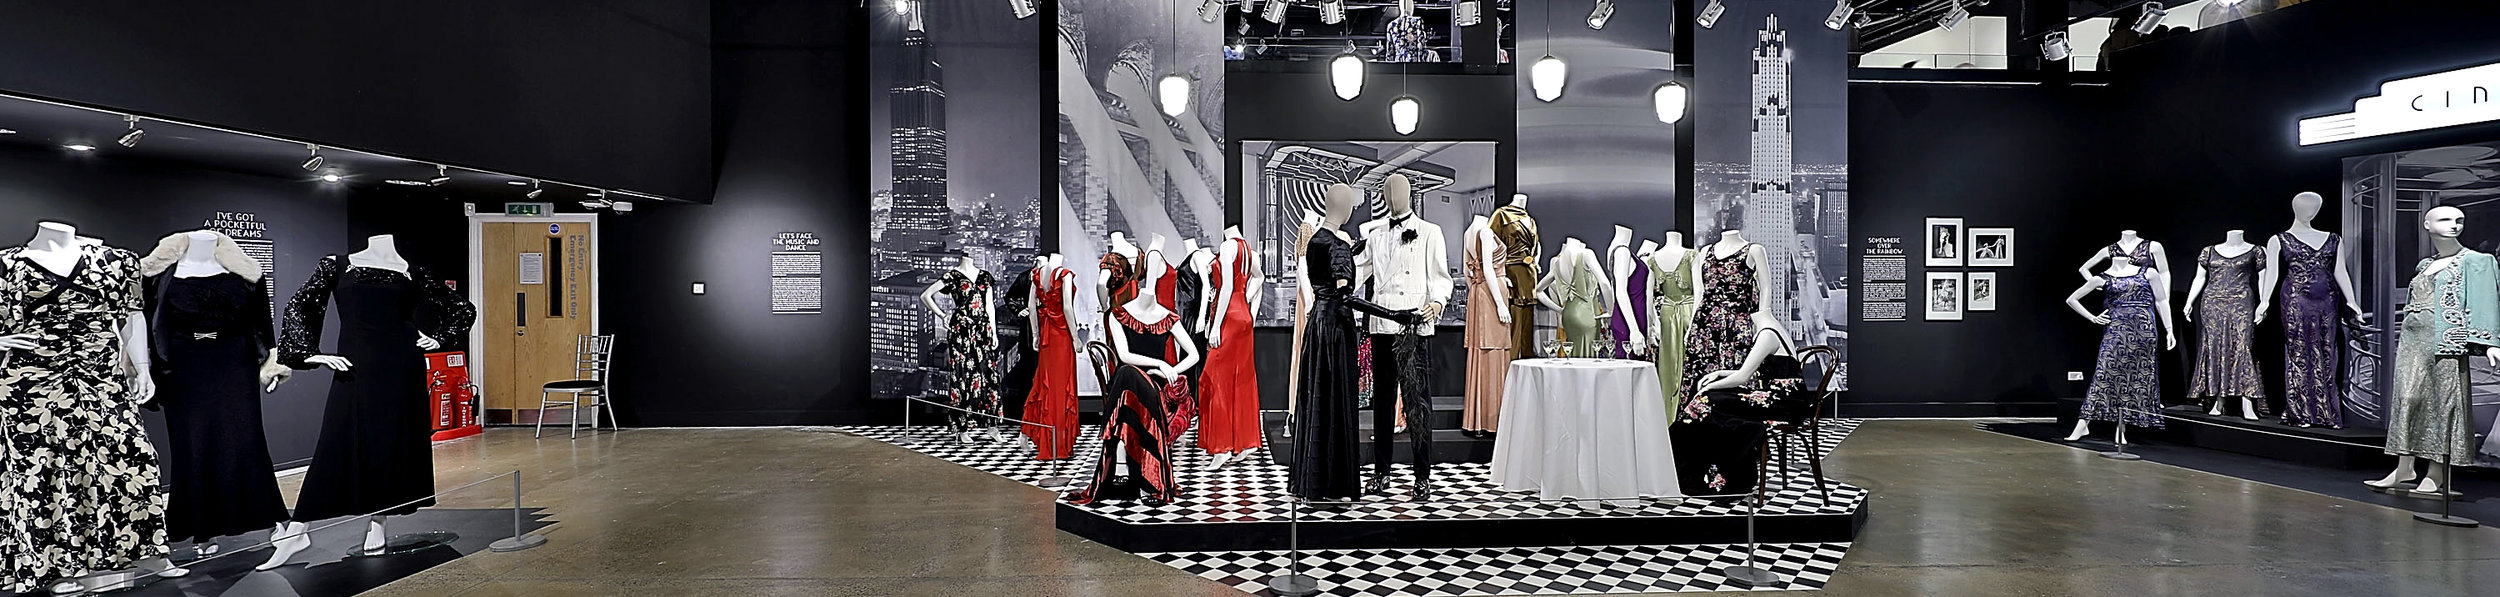 Staged nightclub in the section 'Let's Face the Music and Dance!'. Image courtesy of Fashion and Textile Museum.